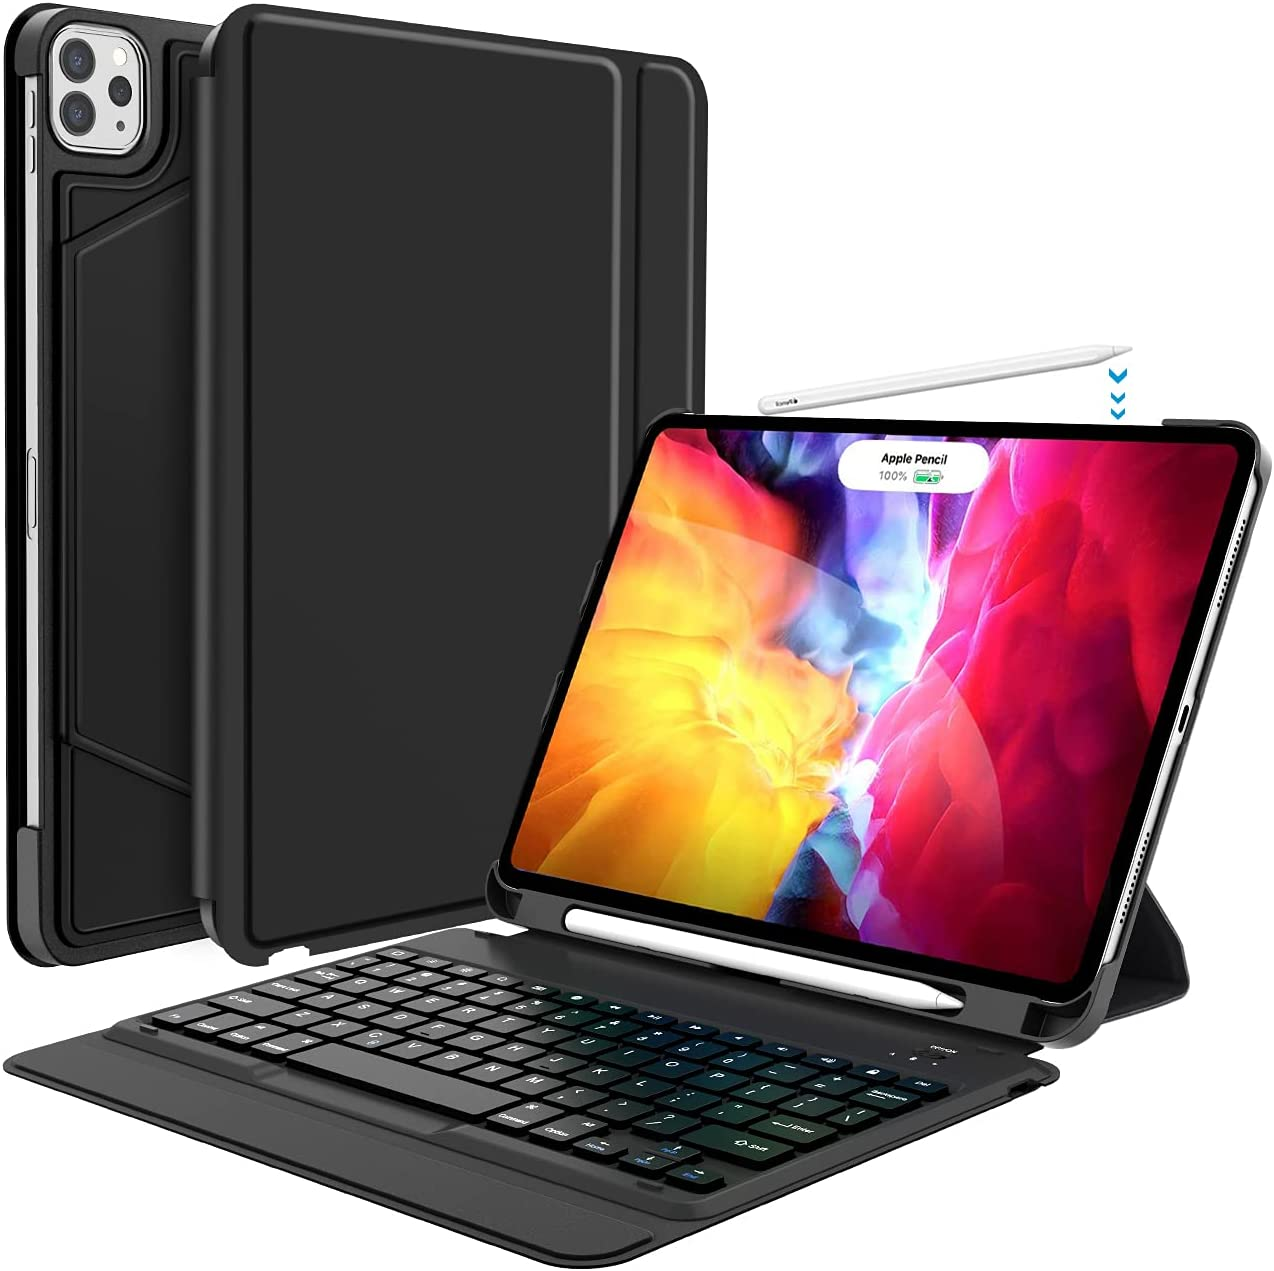 iPad Pro 11 Inch 2021 Case with Keyboard, Keyboard for iPad Pro 11-inch (3rd Generation, 2nd/1st Gen) - Wireless Detachable - with Pencil Holder - Flip Stand Cover - iPad Pro 11 Keyboard, One Piece-BK